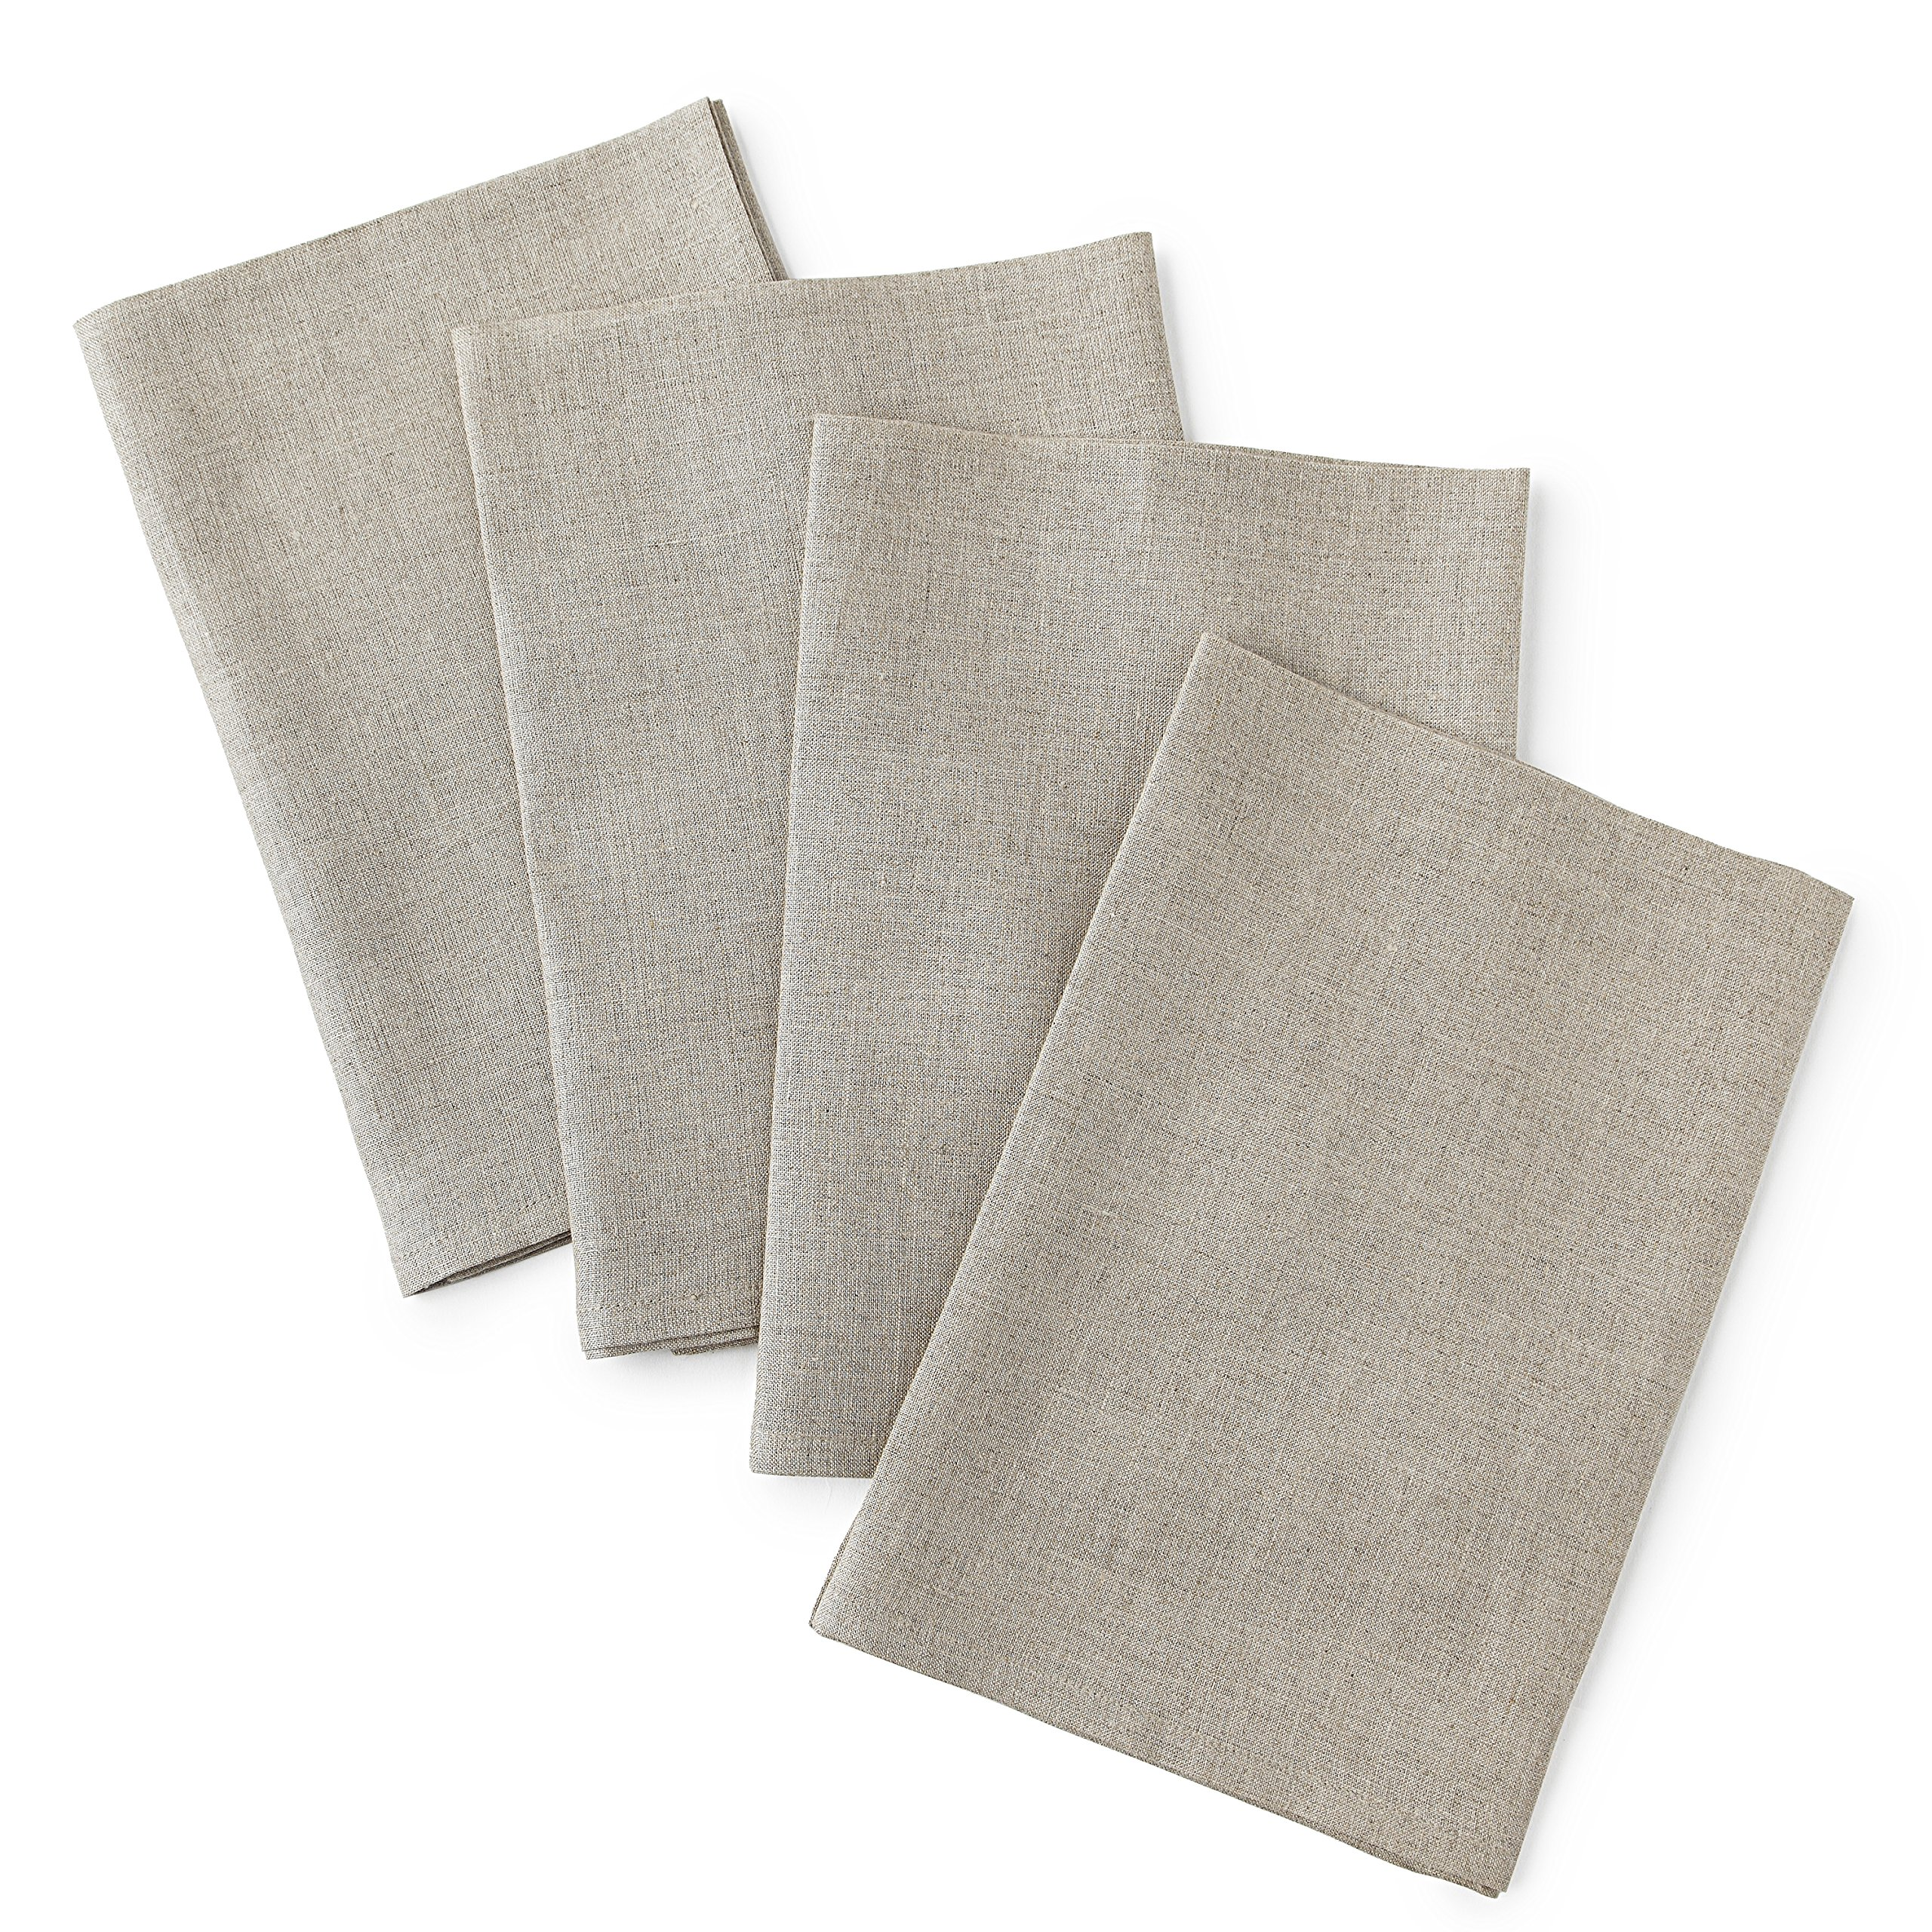 Solino Home Linen Dinner Napkins - 20 x 20 Inch Natural, 4 Pack Linen Napkins, Athena - 100% European Flax, Soft & Handcrafted with Mitered Corners